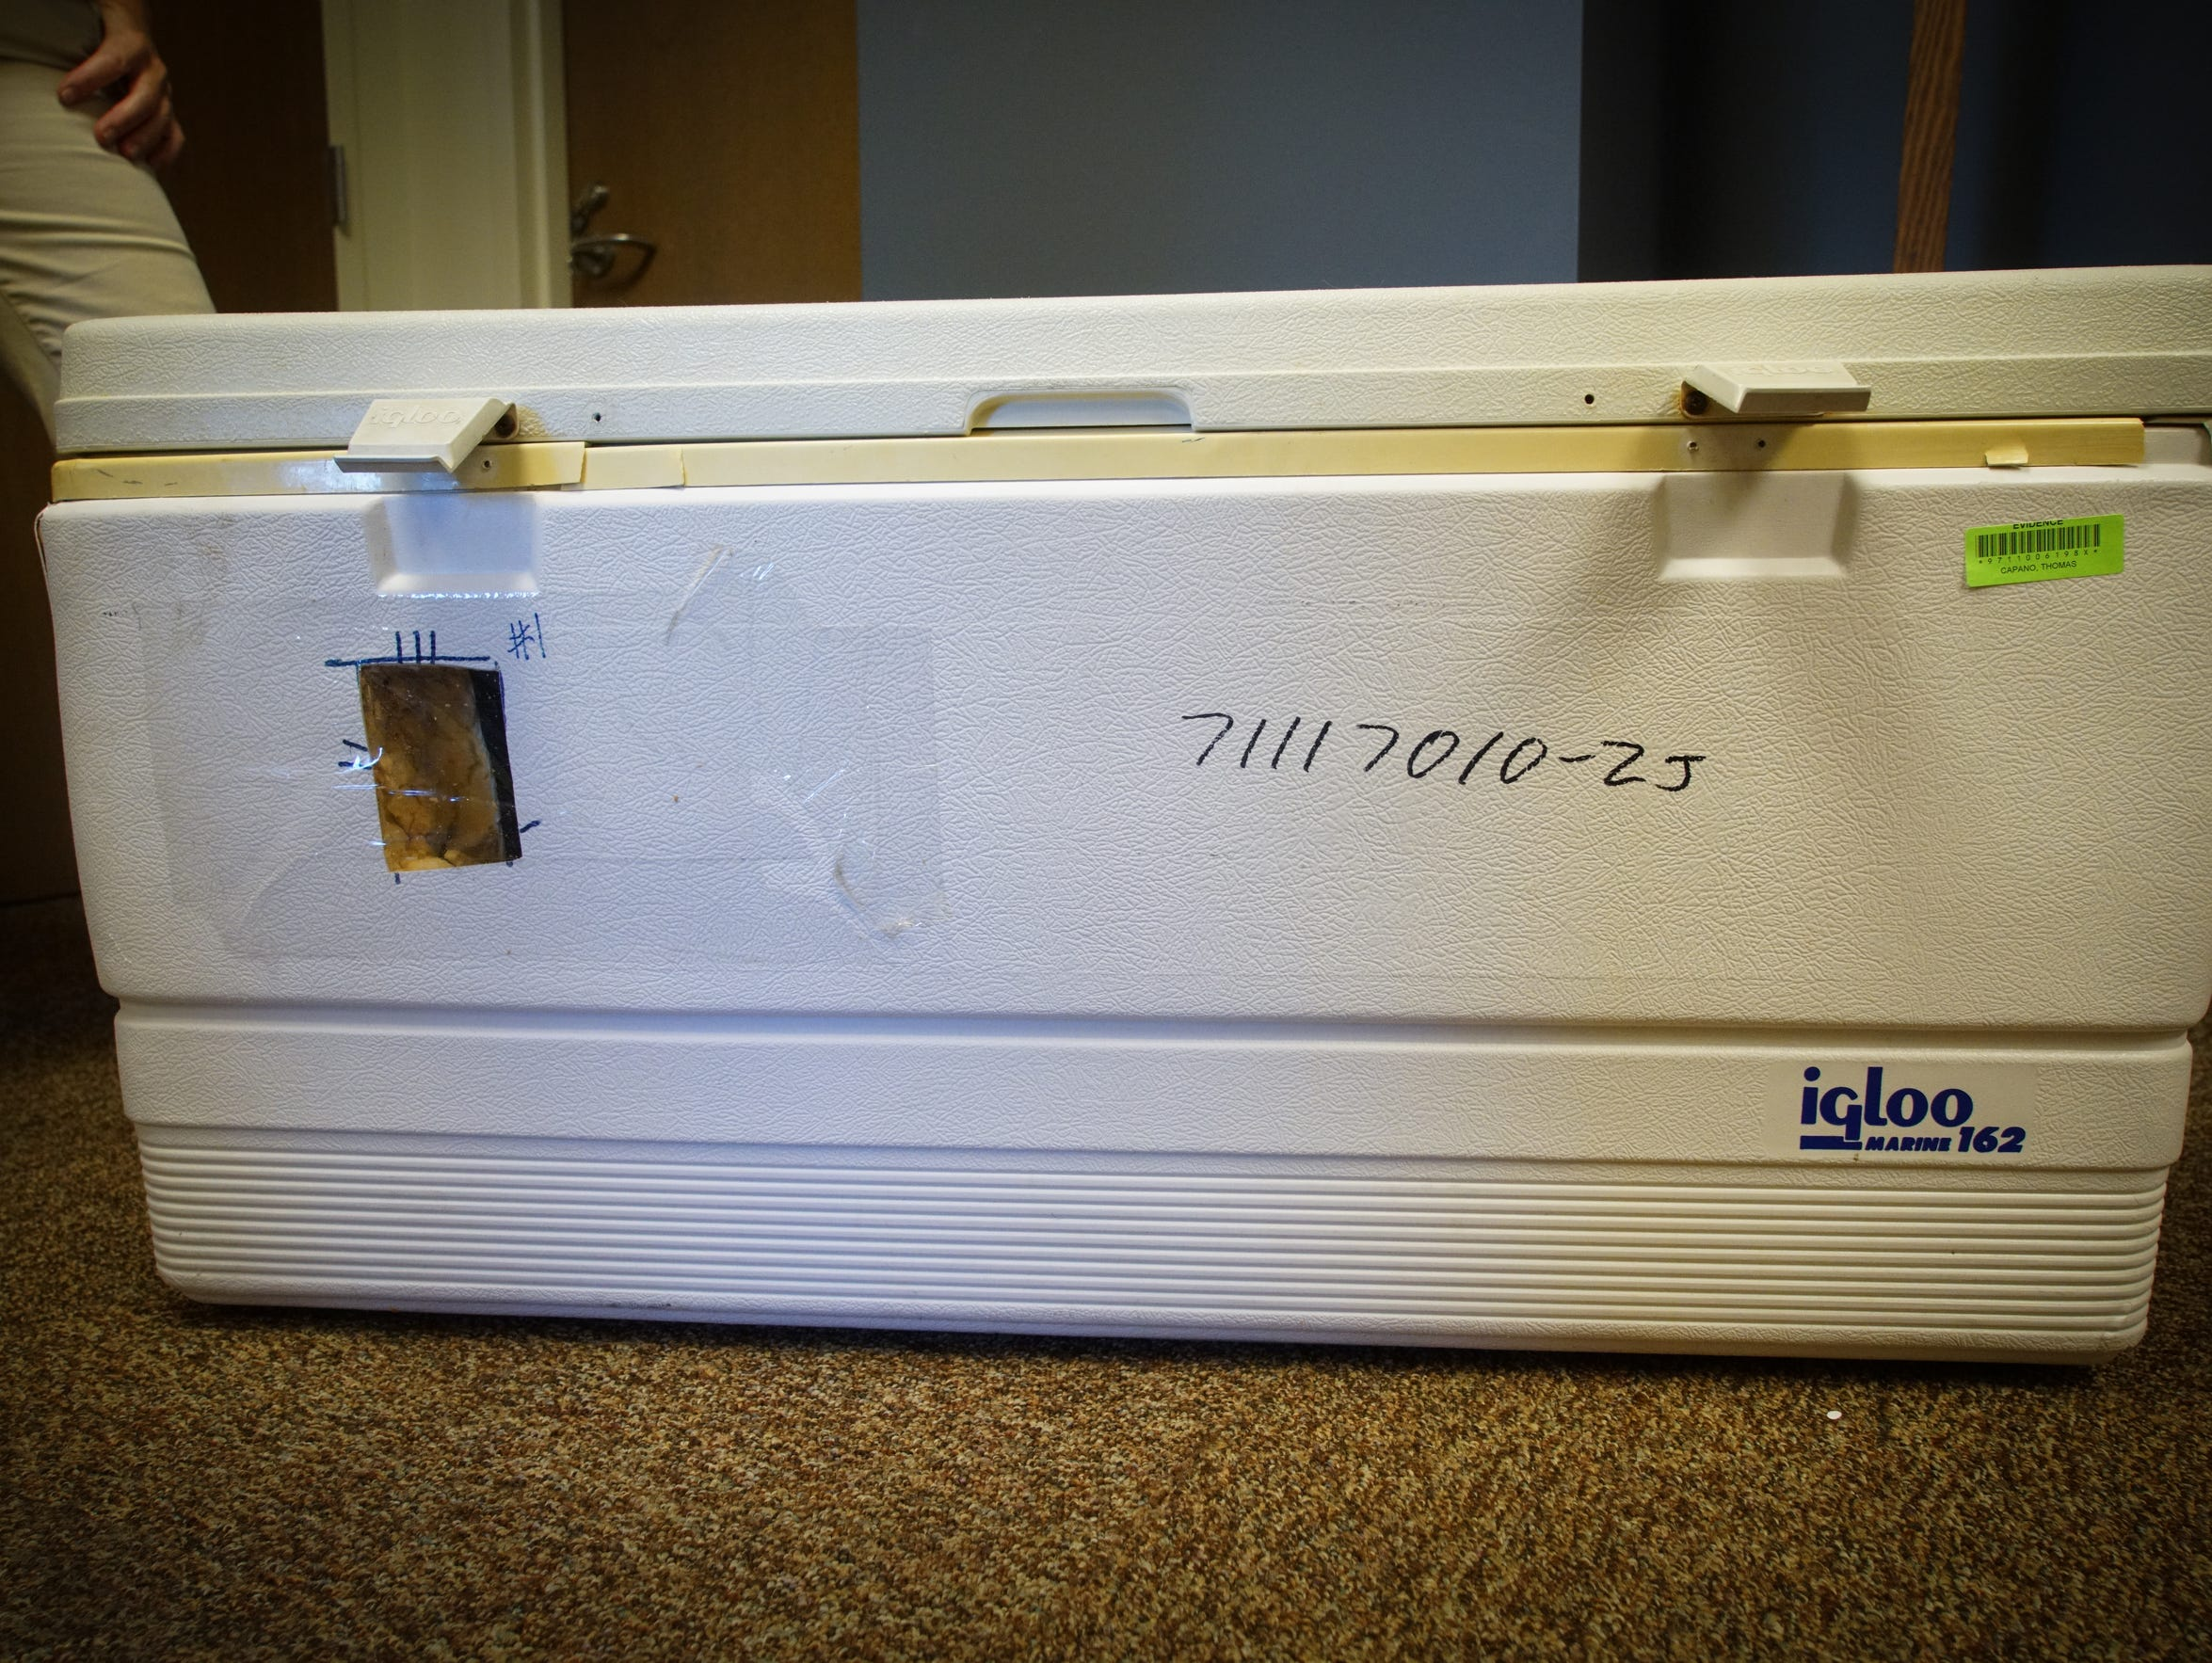 The 40.5 gallon Igloo fishing cooler that Tom Capano